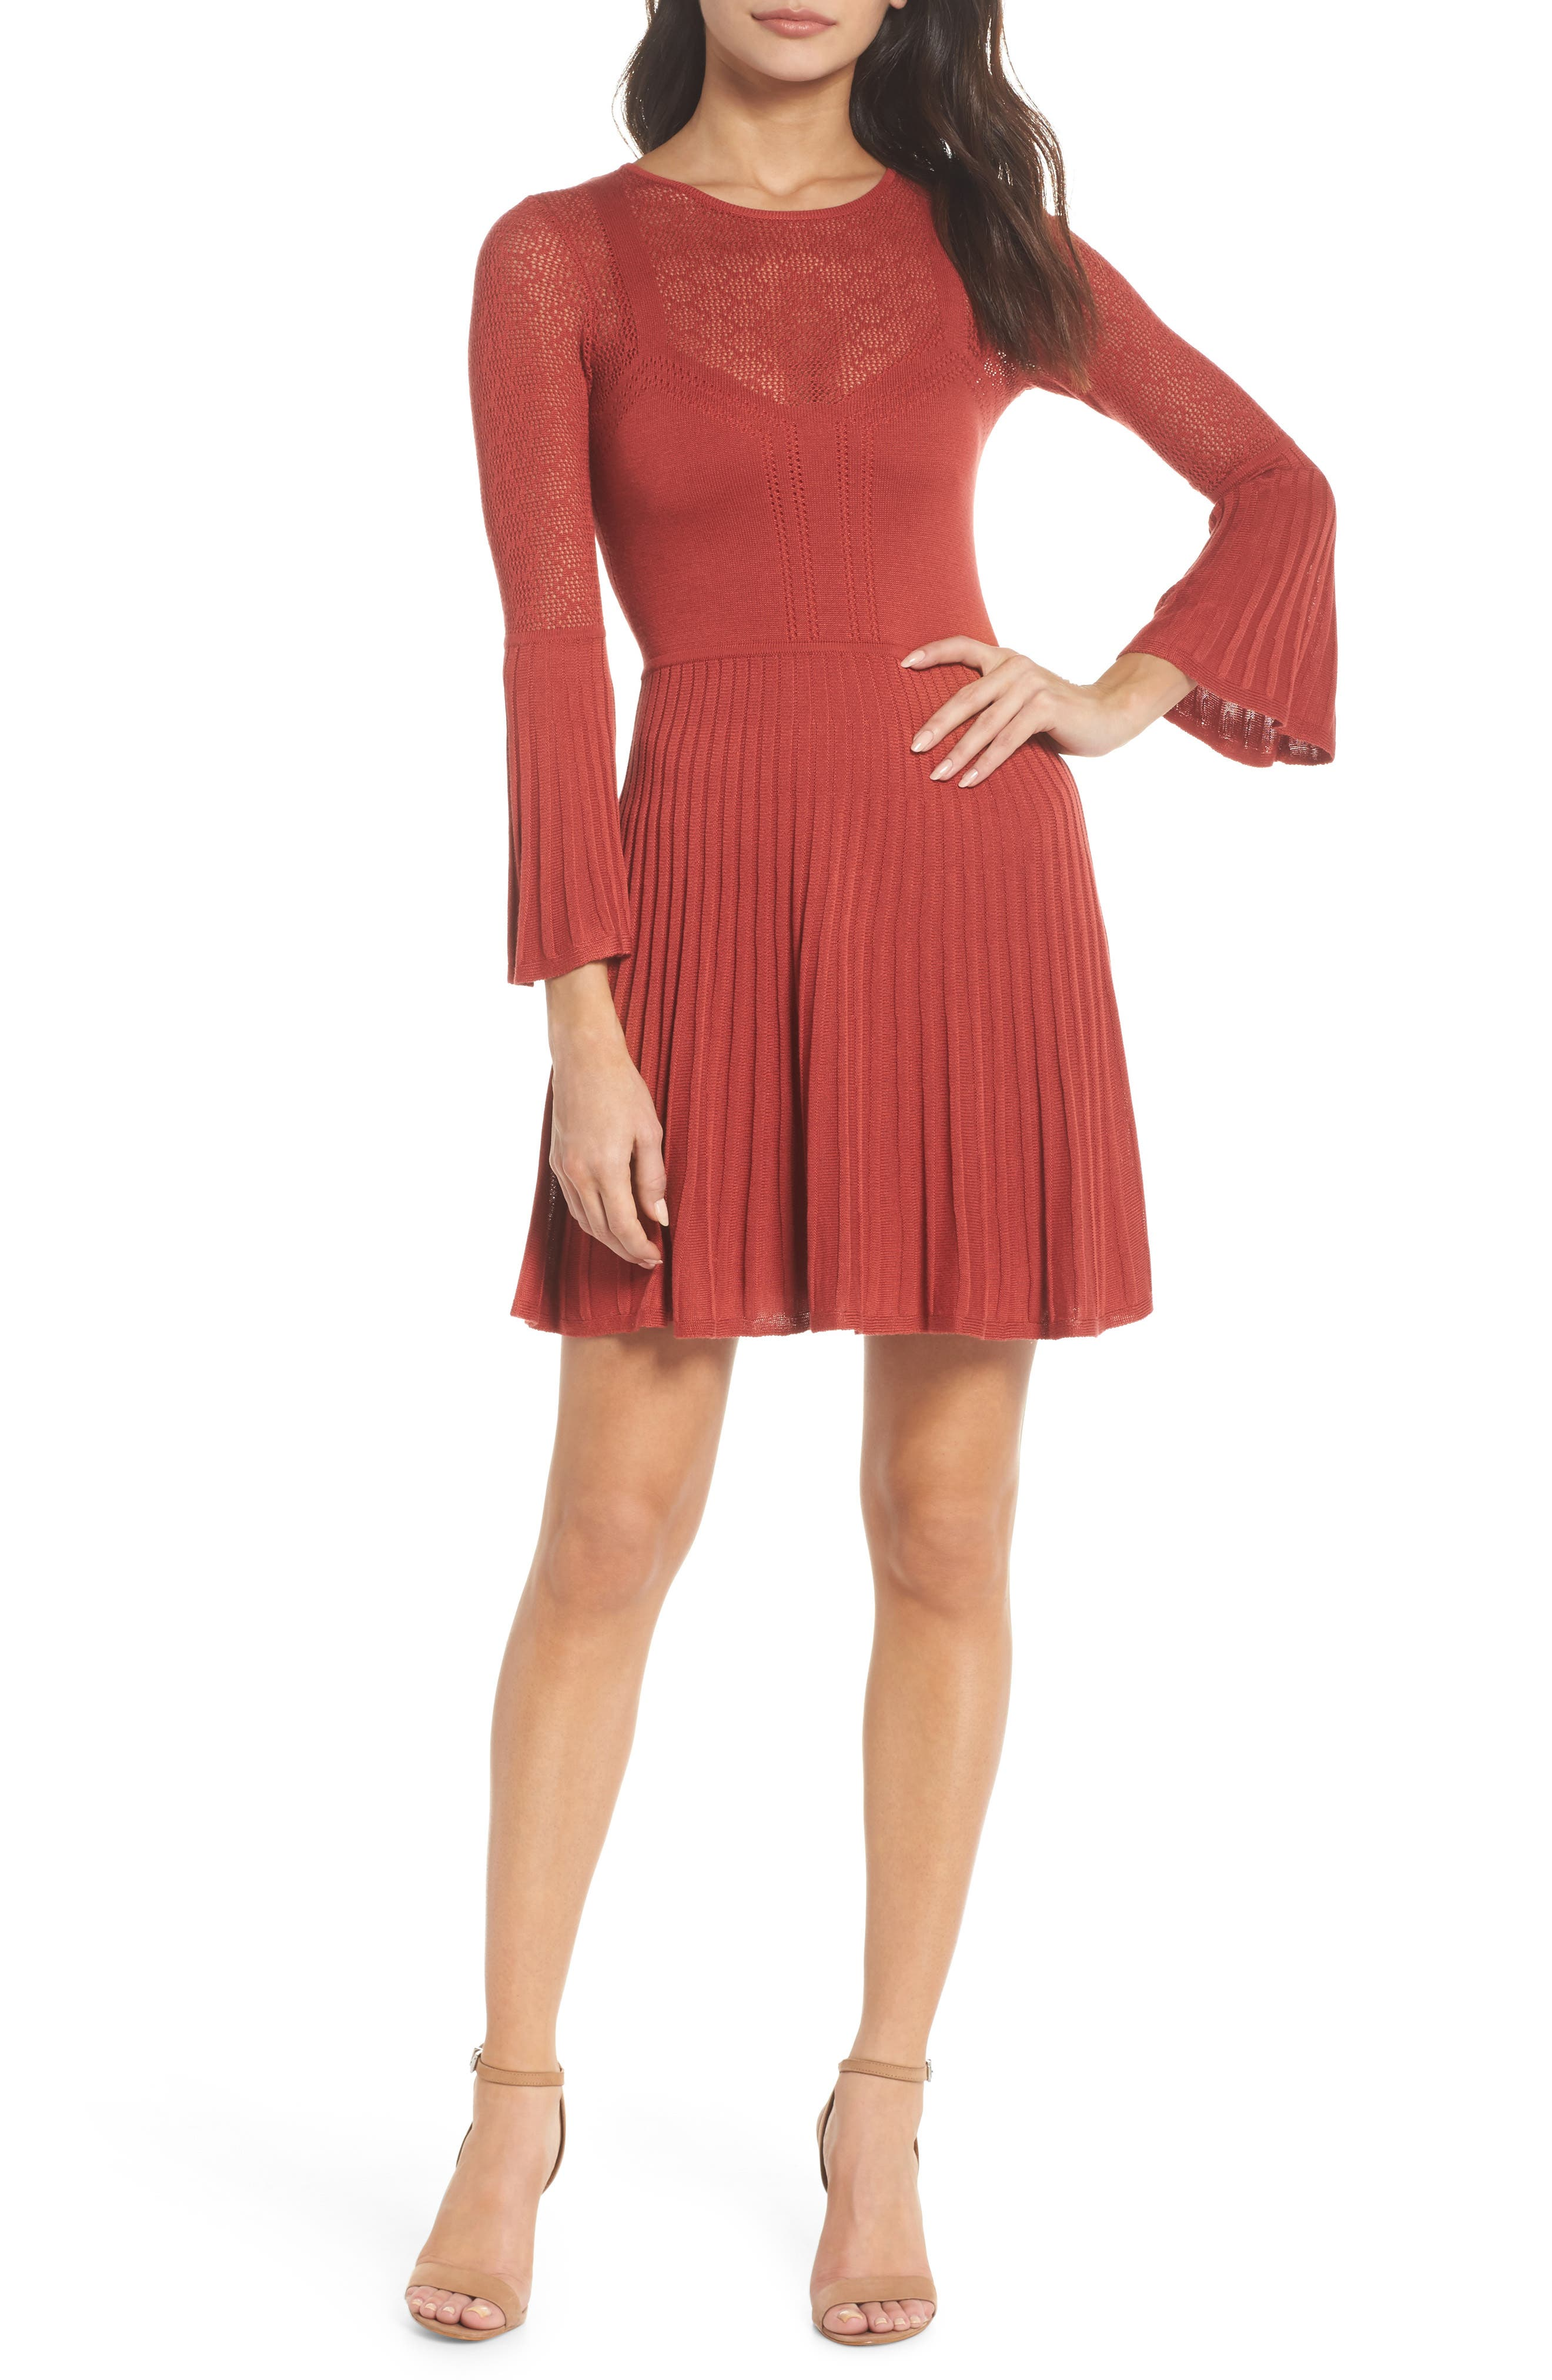 Private Concert Sweater Dress,                             Main thumbnail 1, color,                             600